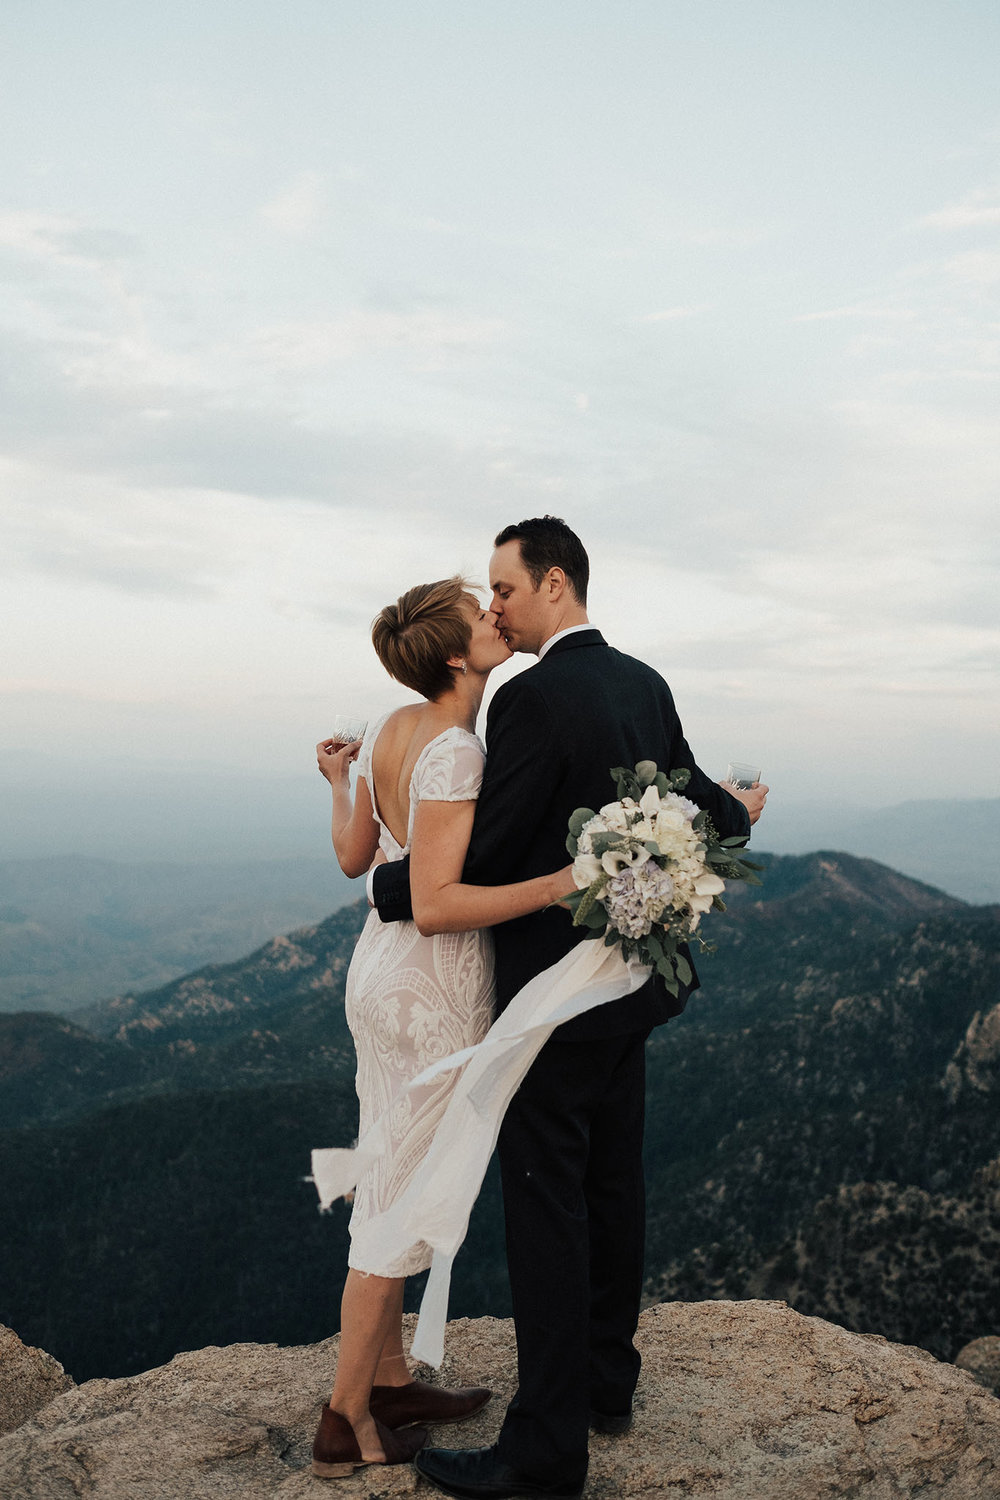 Arizona-Intimate-Elopement-Adventure-Photographer-Mount-Lemmon (31).jpg